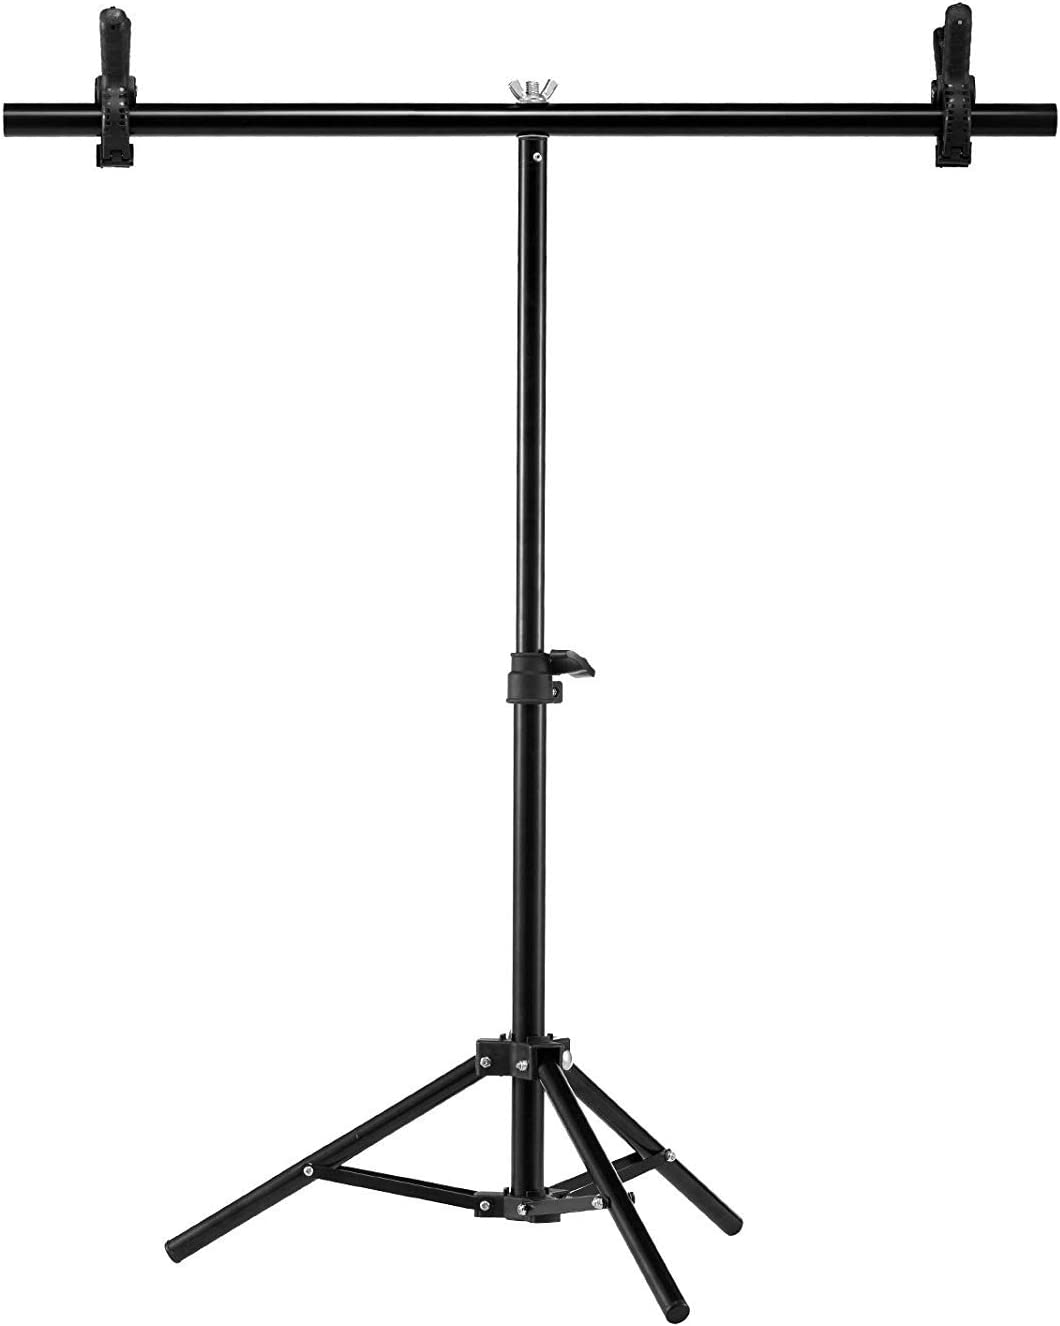 Selens Photography Backdrop Stand 30 Inches Small T Shape Support Light Stands Mini Holder for Photo Studio Tabletop Desktop Background Paper